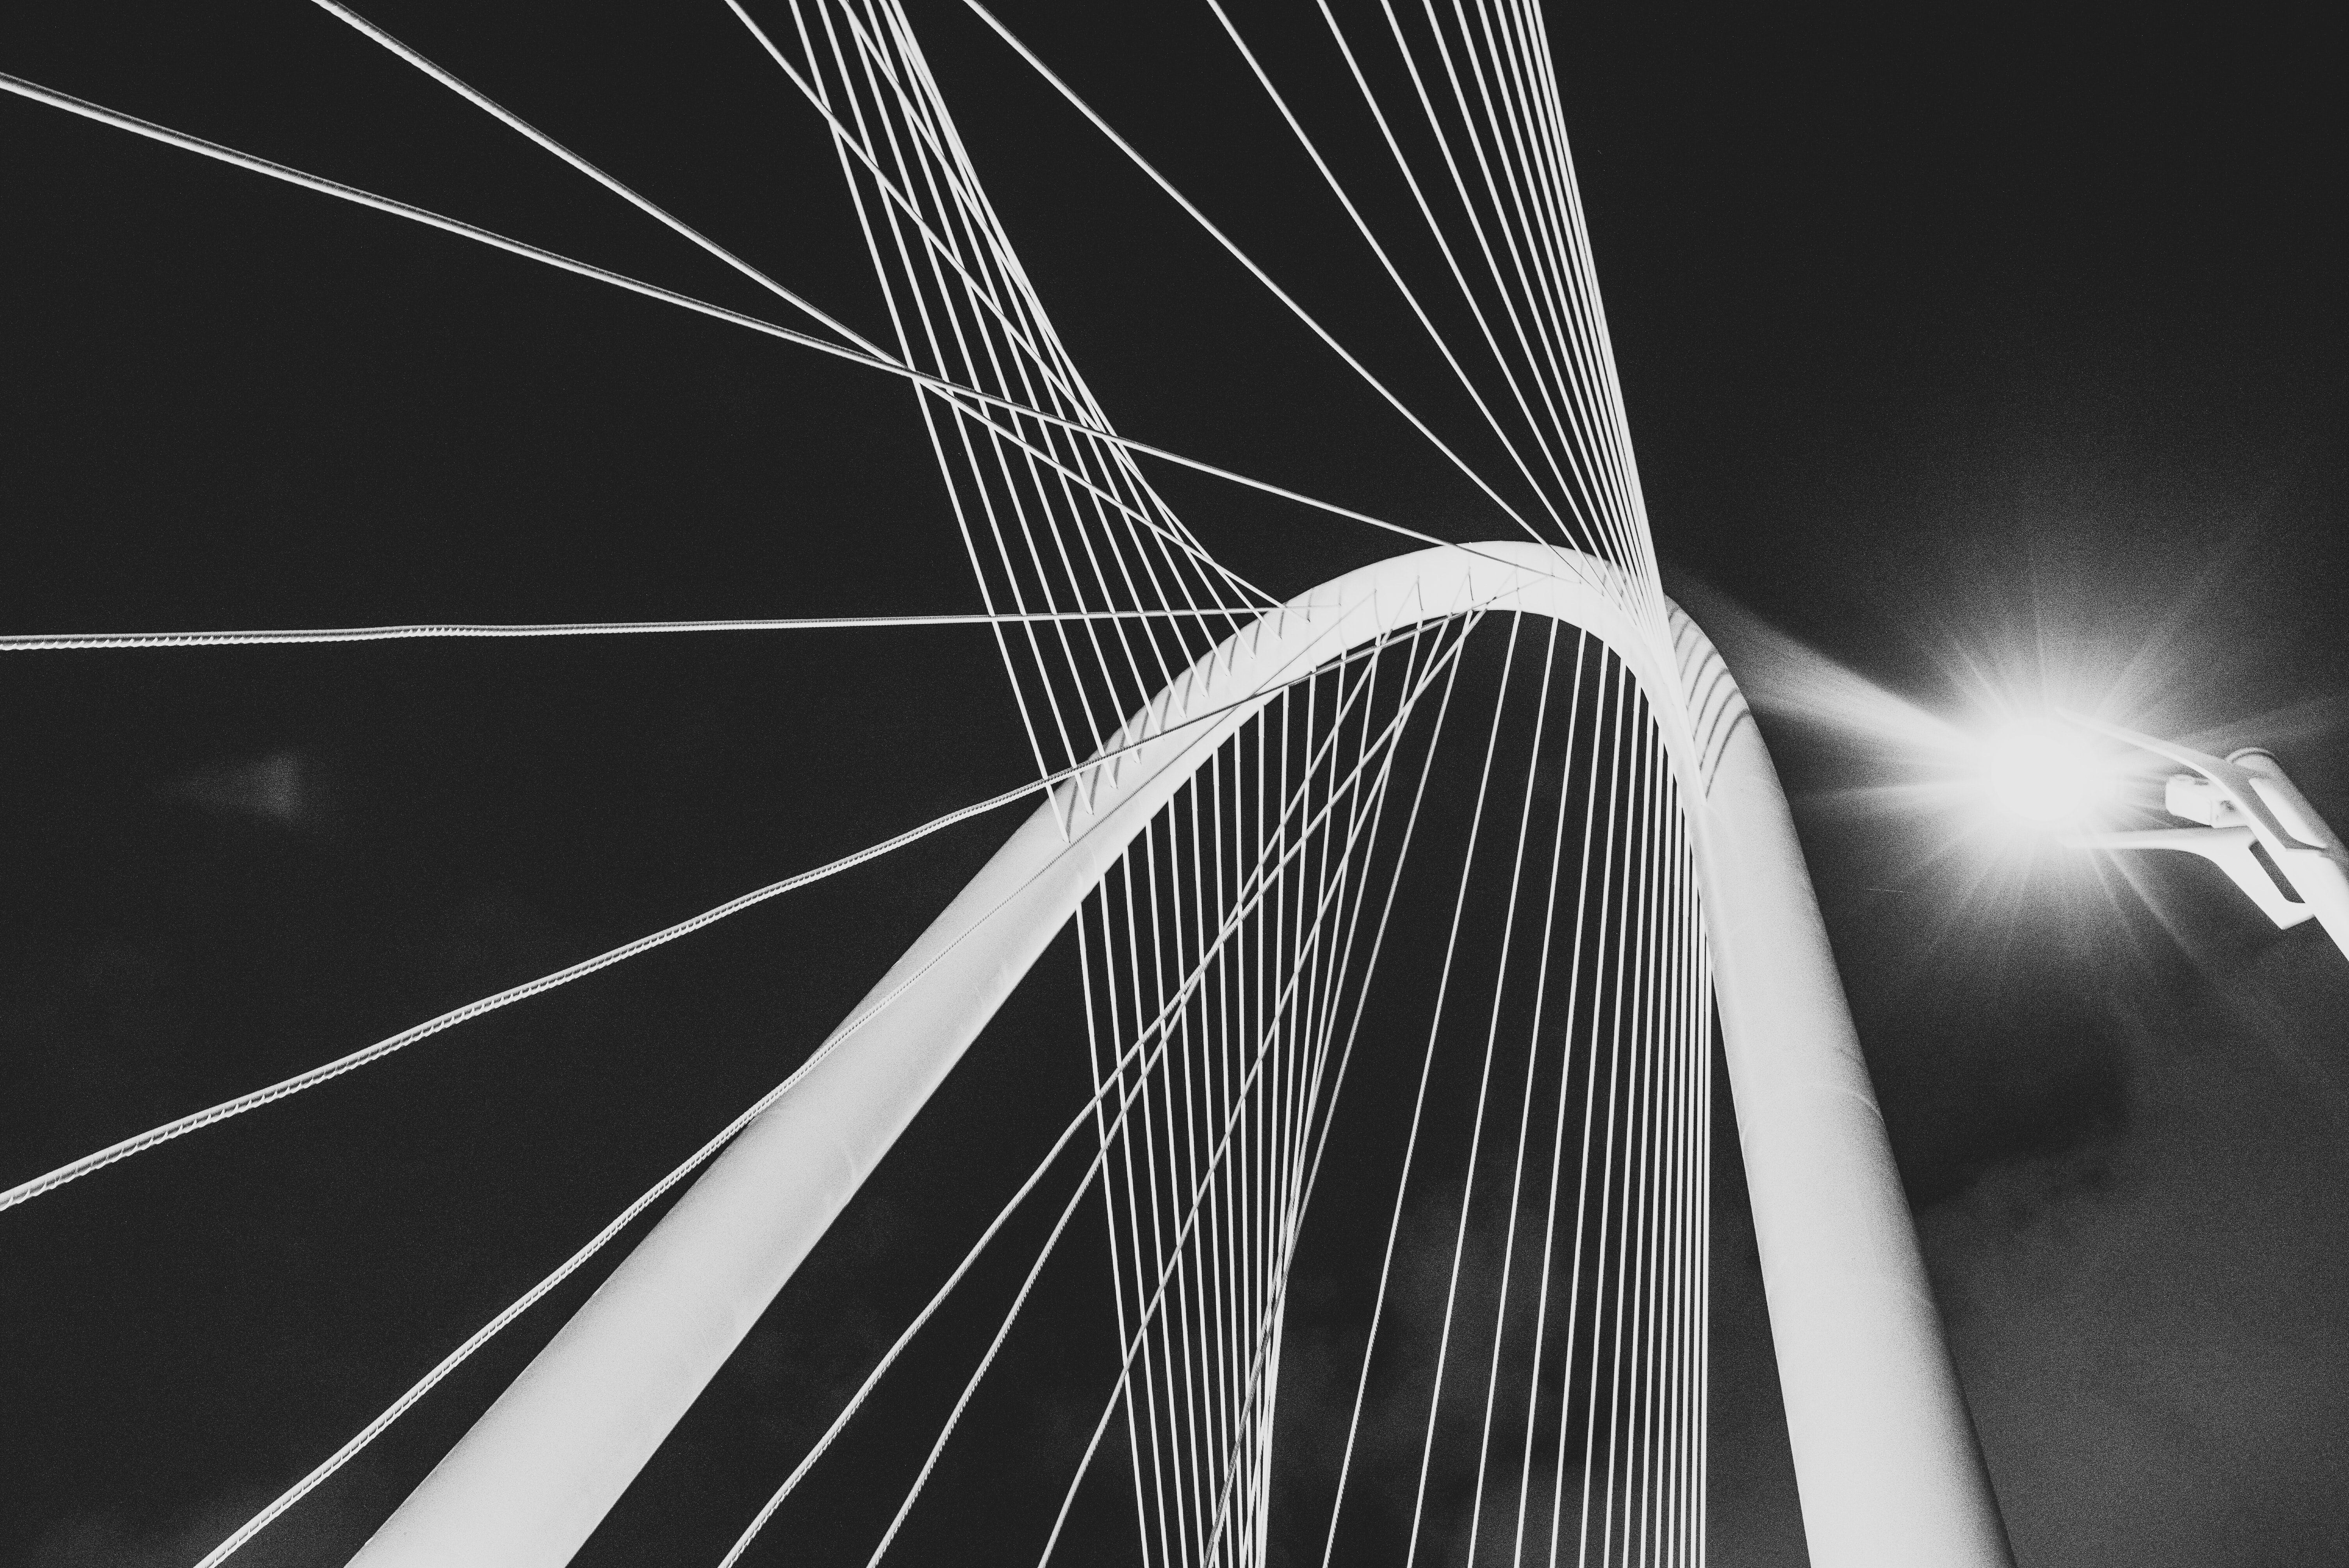 Black and white shot of bridge architecture with metal wire from below with light